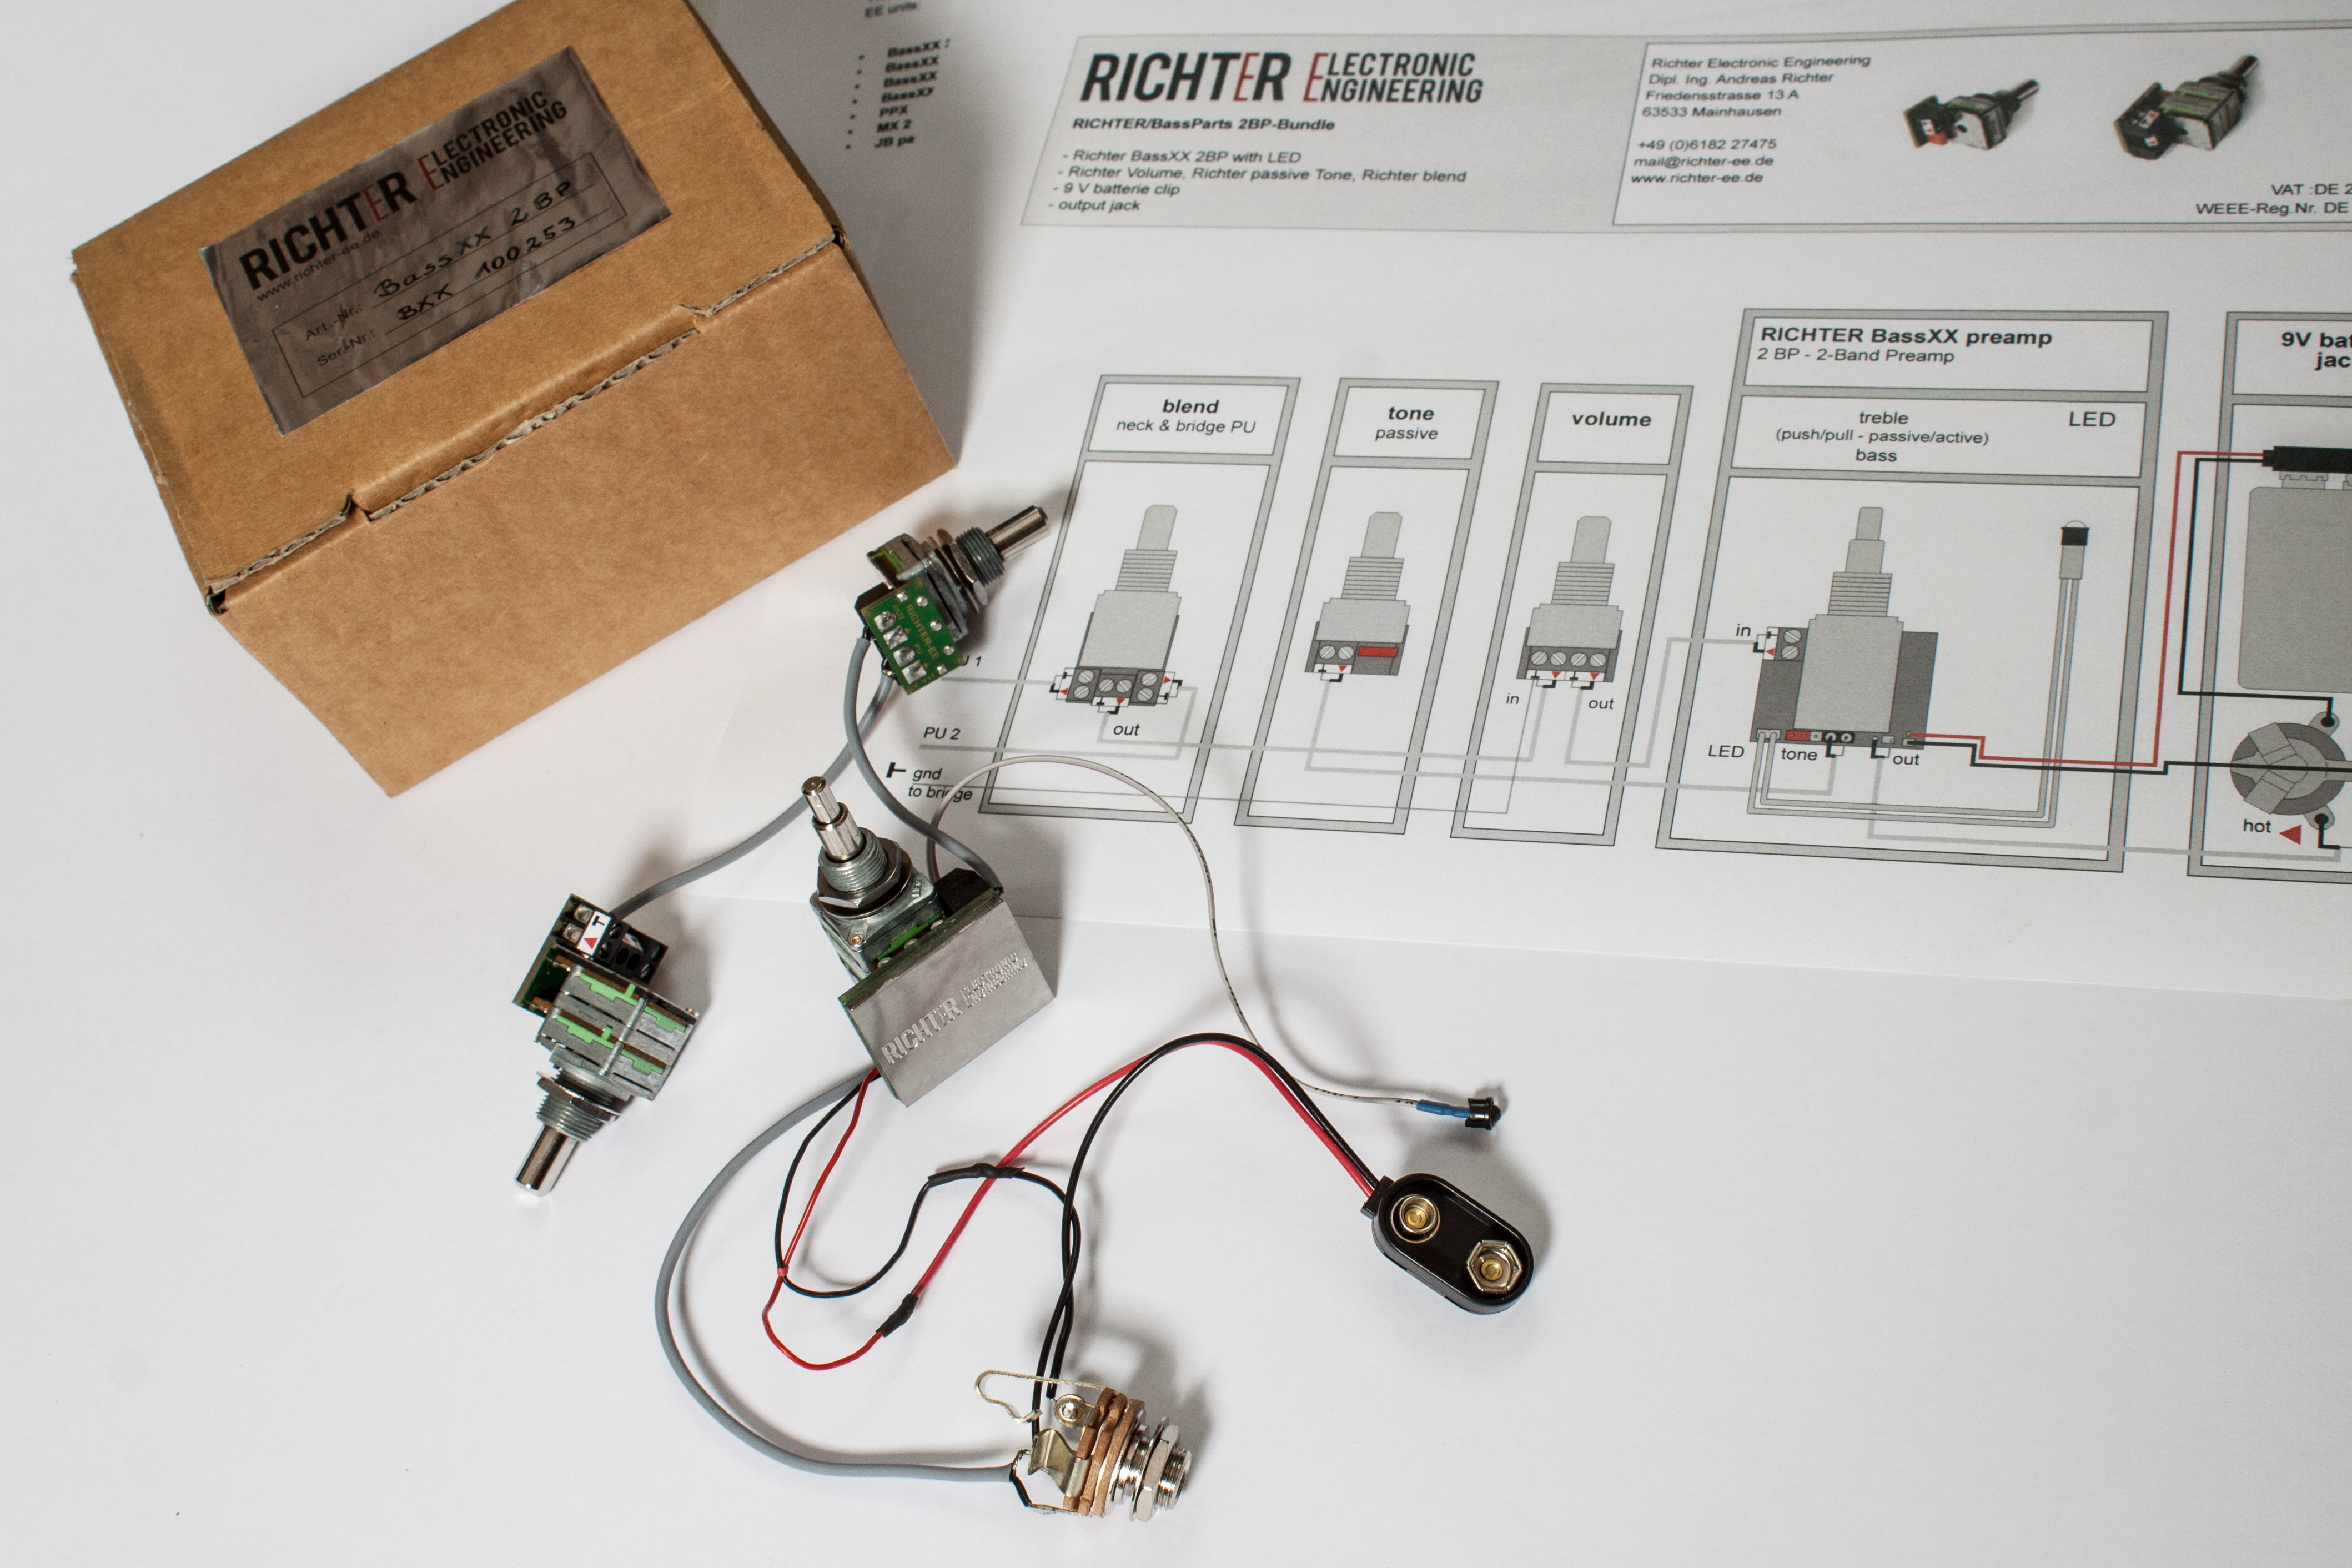 Richter Electronic Engineering